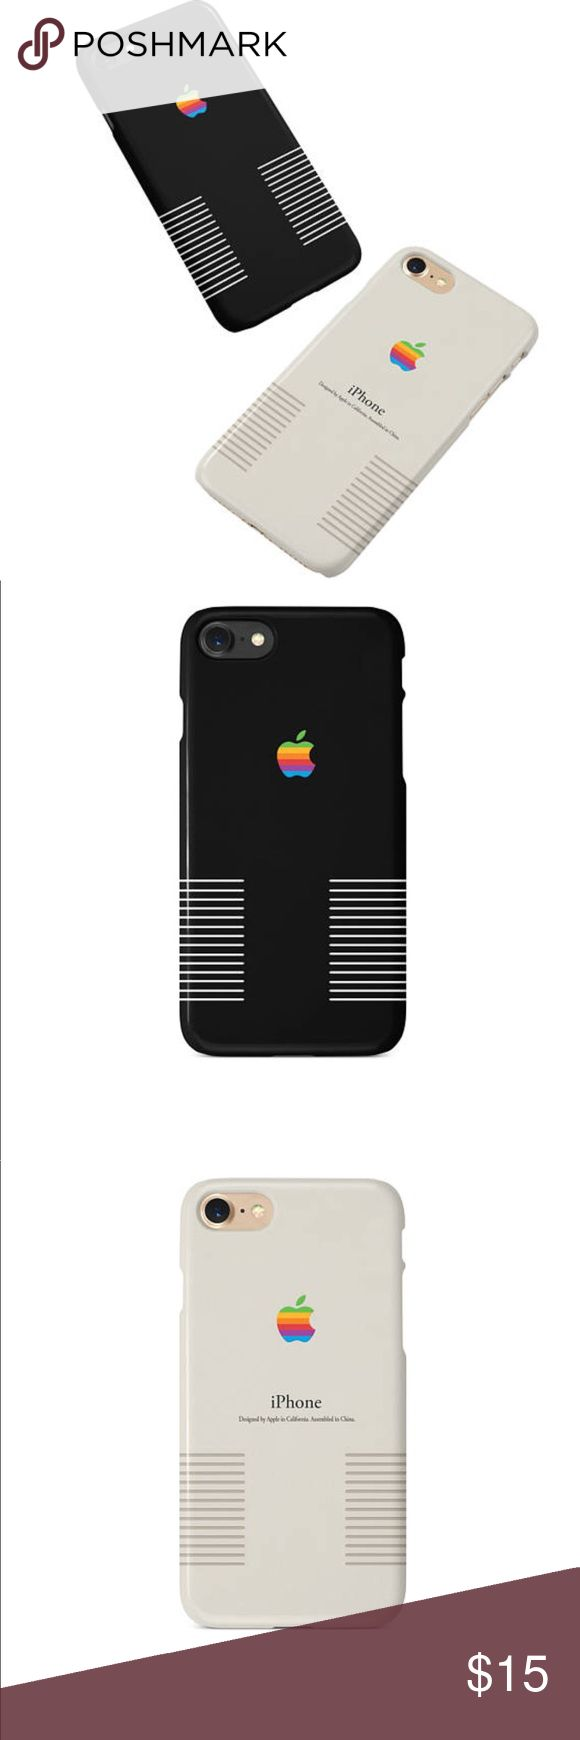 Retro Apple iPhone Case Black or White Choose color by mentioning in the comment or you will receive a color chosen at random. Retro classic Apple iPhone case. Price is firm. Discount only when you buy 3 or more from my closet.  ****Sizes Available**** • iPhone 6 / 6S • iPhone 7 • iPhone 6 Plus / 6S Plus • iPhone 7 Plus • iPhone 8 • iPhone 8 Plus  • iPhone X Returns in original condition accepted within 14 days. Buyer pays return shipping. apple Accessories Phone Cases